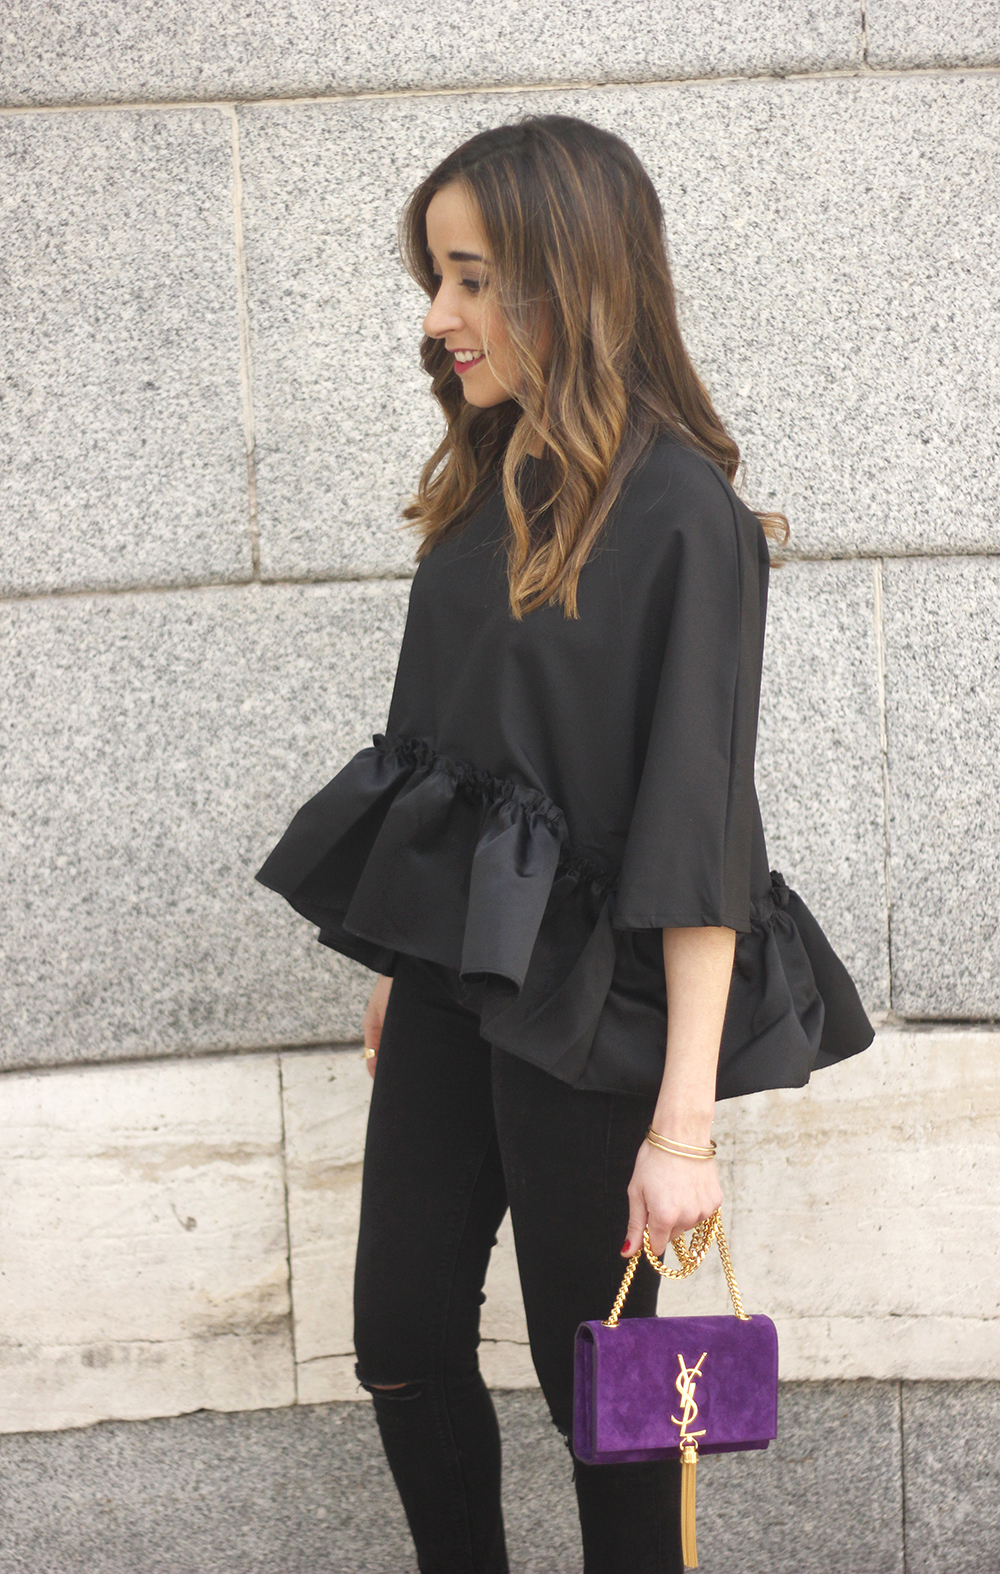 black top with a ruffle Carolina Herrera Sandals YSL bag accessories outfit style20